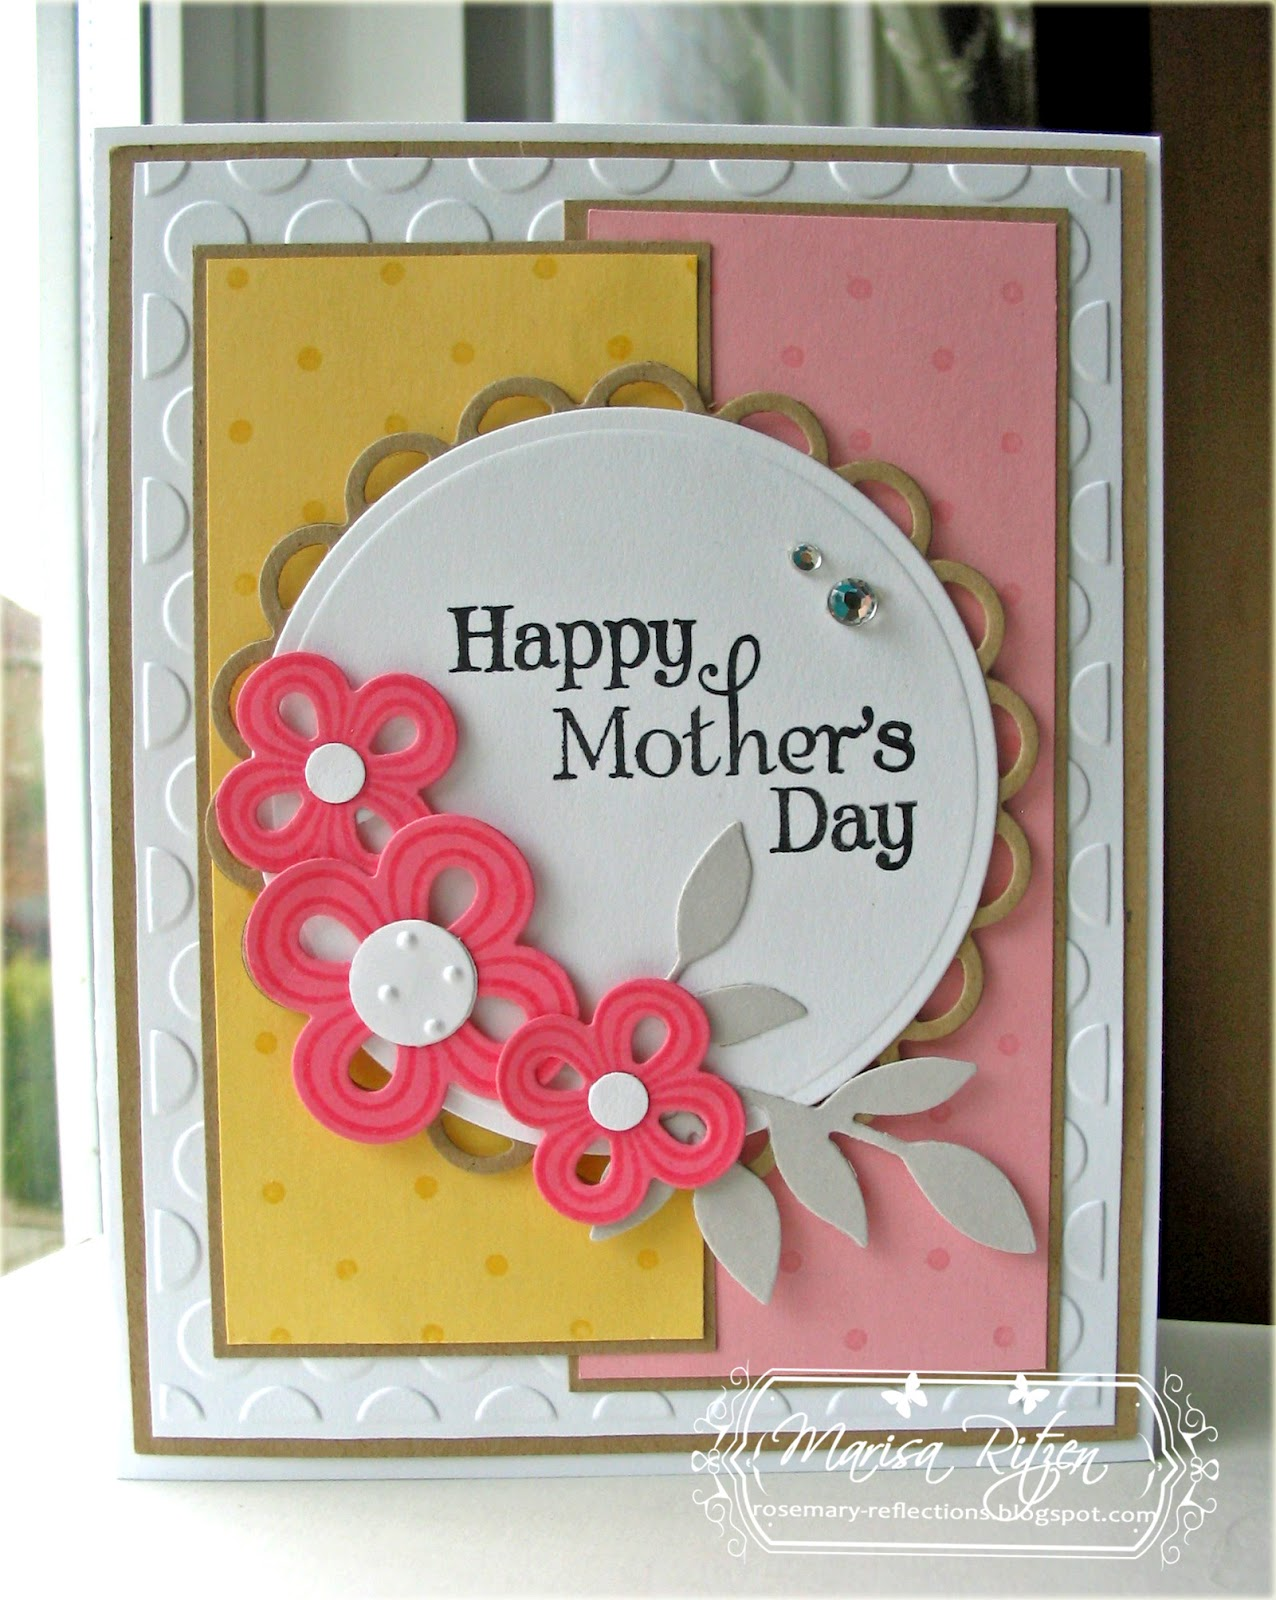 Rosemary Reflections: SFYTT Mother's Day Version